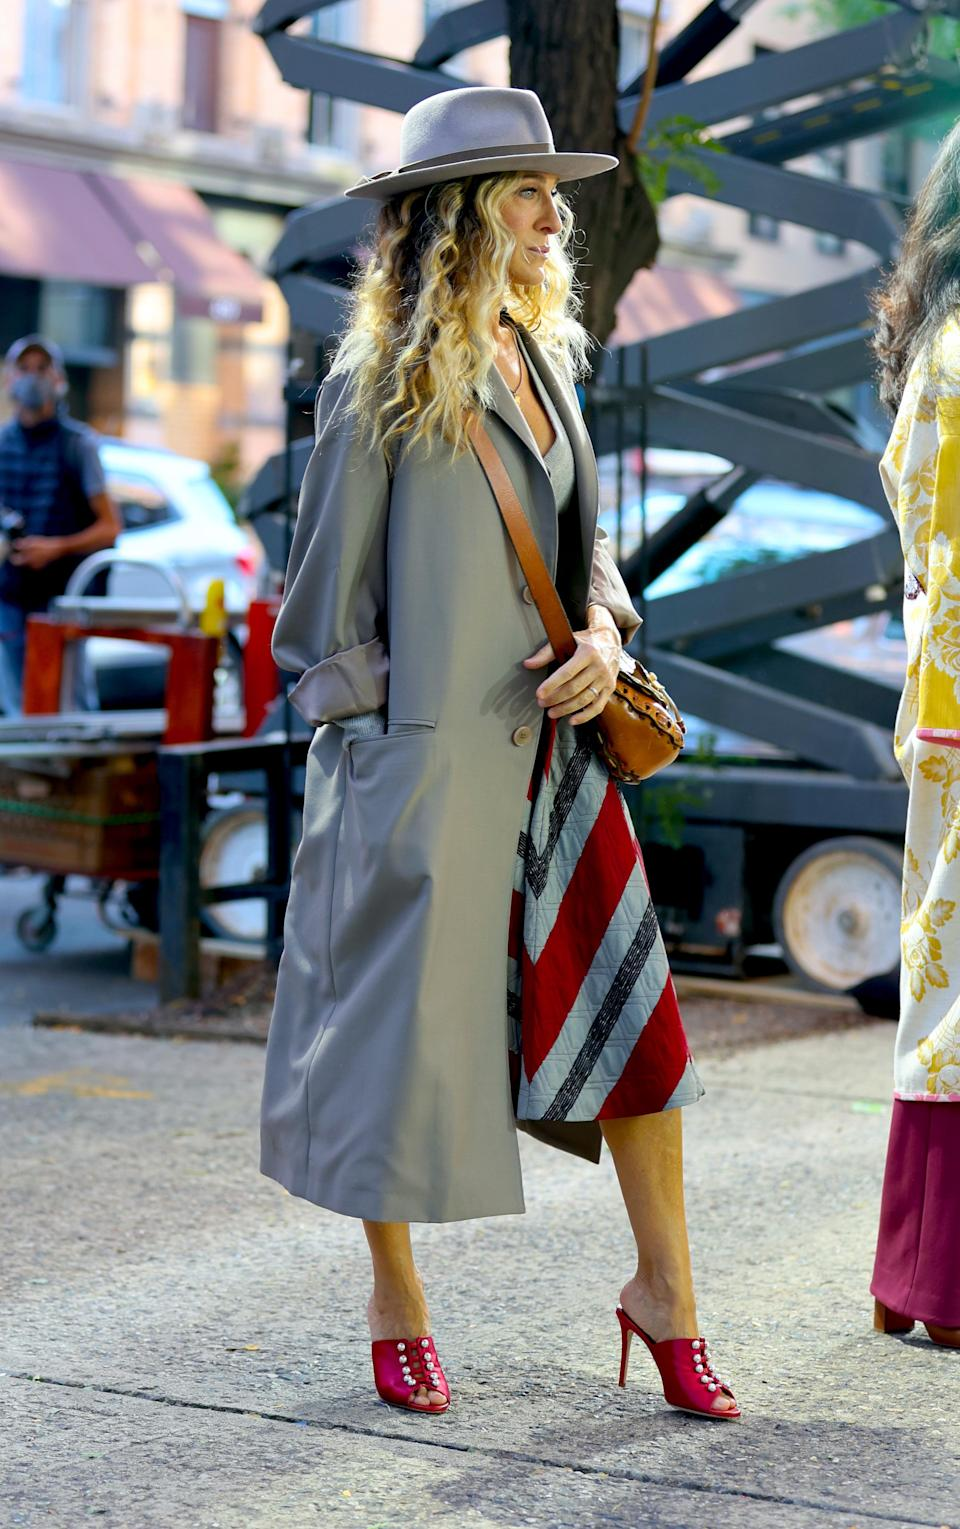 """Sarah Jessica Parker and Sarita Choudhury film """"And Just Like That…"""" in New York City. - Credit: Jose Perez/Bauergriffin.com / MEGA"""